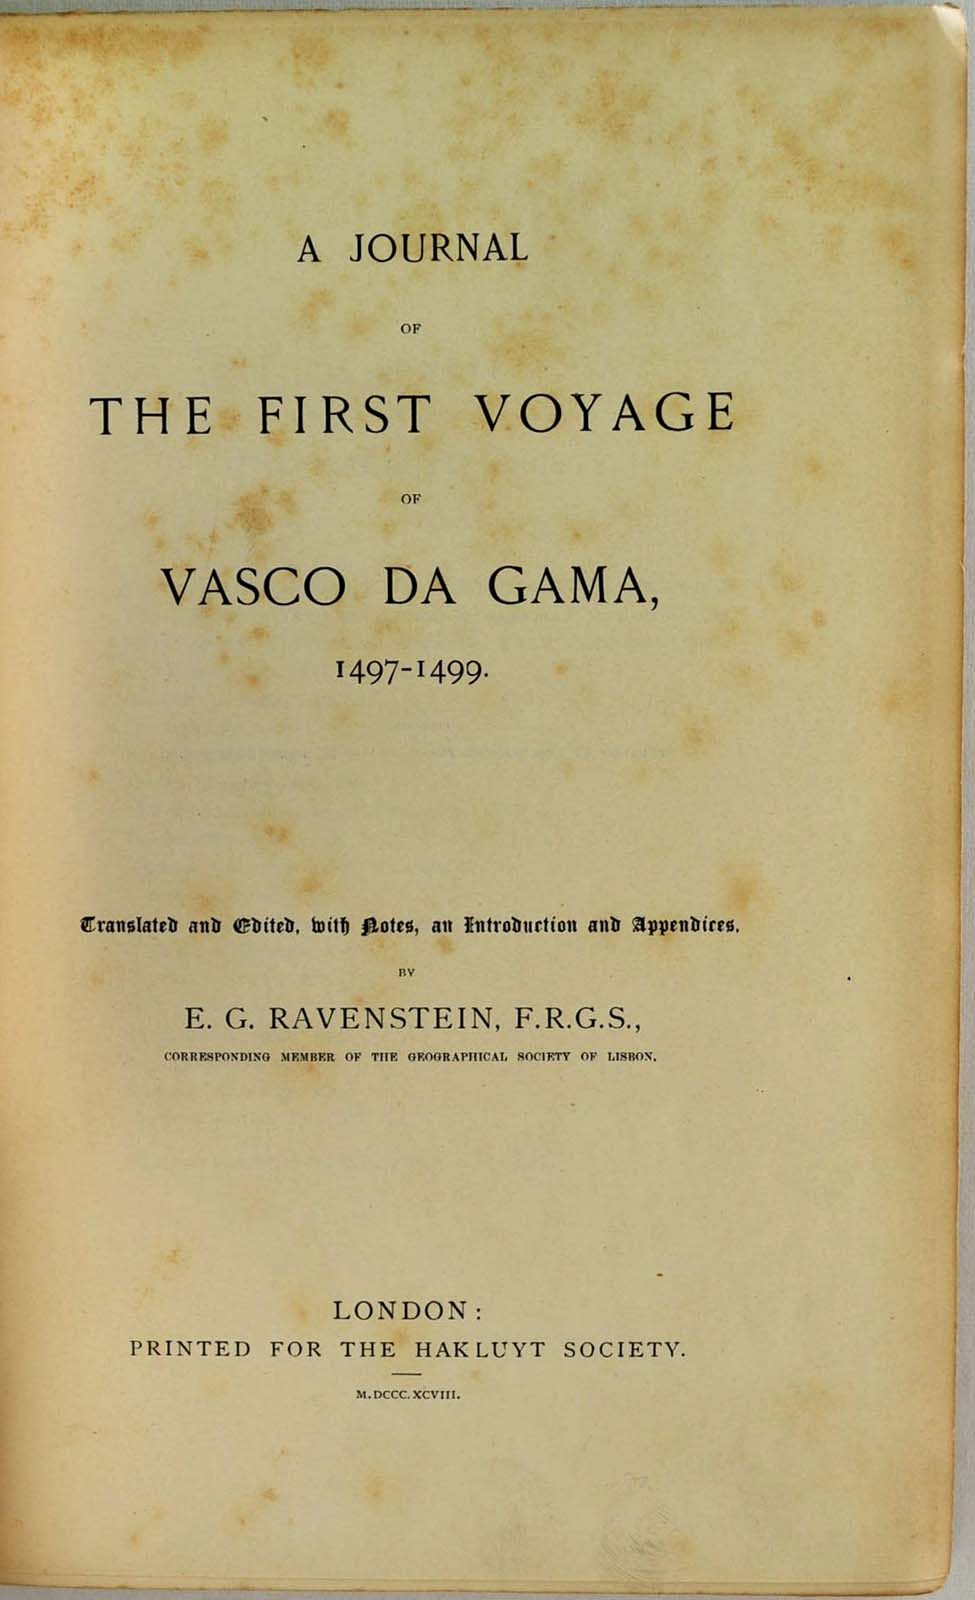 And Vasco Da Gama A Journal Of The First Voyage Of Vasco Da Gama 1497 1499 Translated And Edited With Notes An Introduction And Appendices By E G Ravenstein By